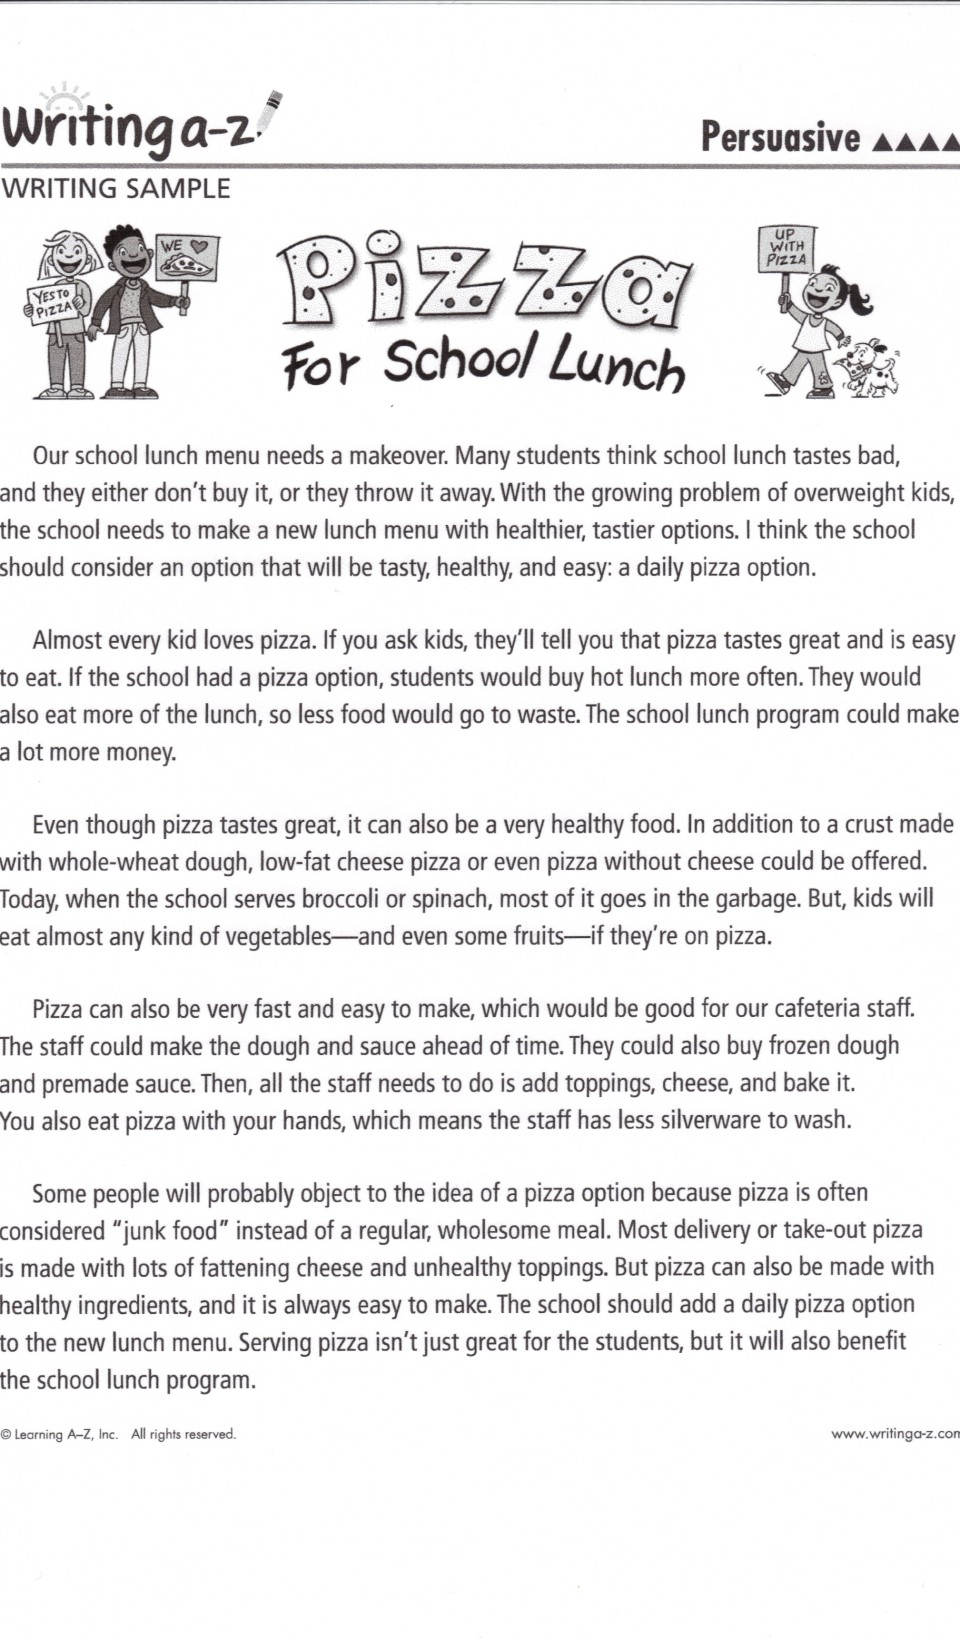 004 Essay Example 20102093b343b4120pm20fluent Opinion About Fast Unbelievable Food Is A Good Alternative To Cooking For Yourself Restaurants 960